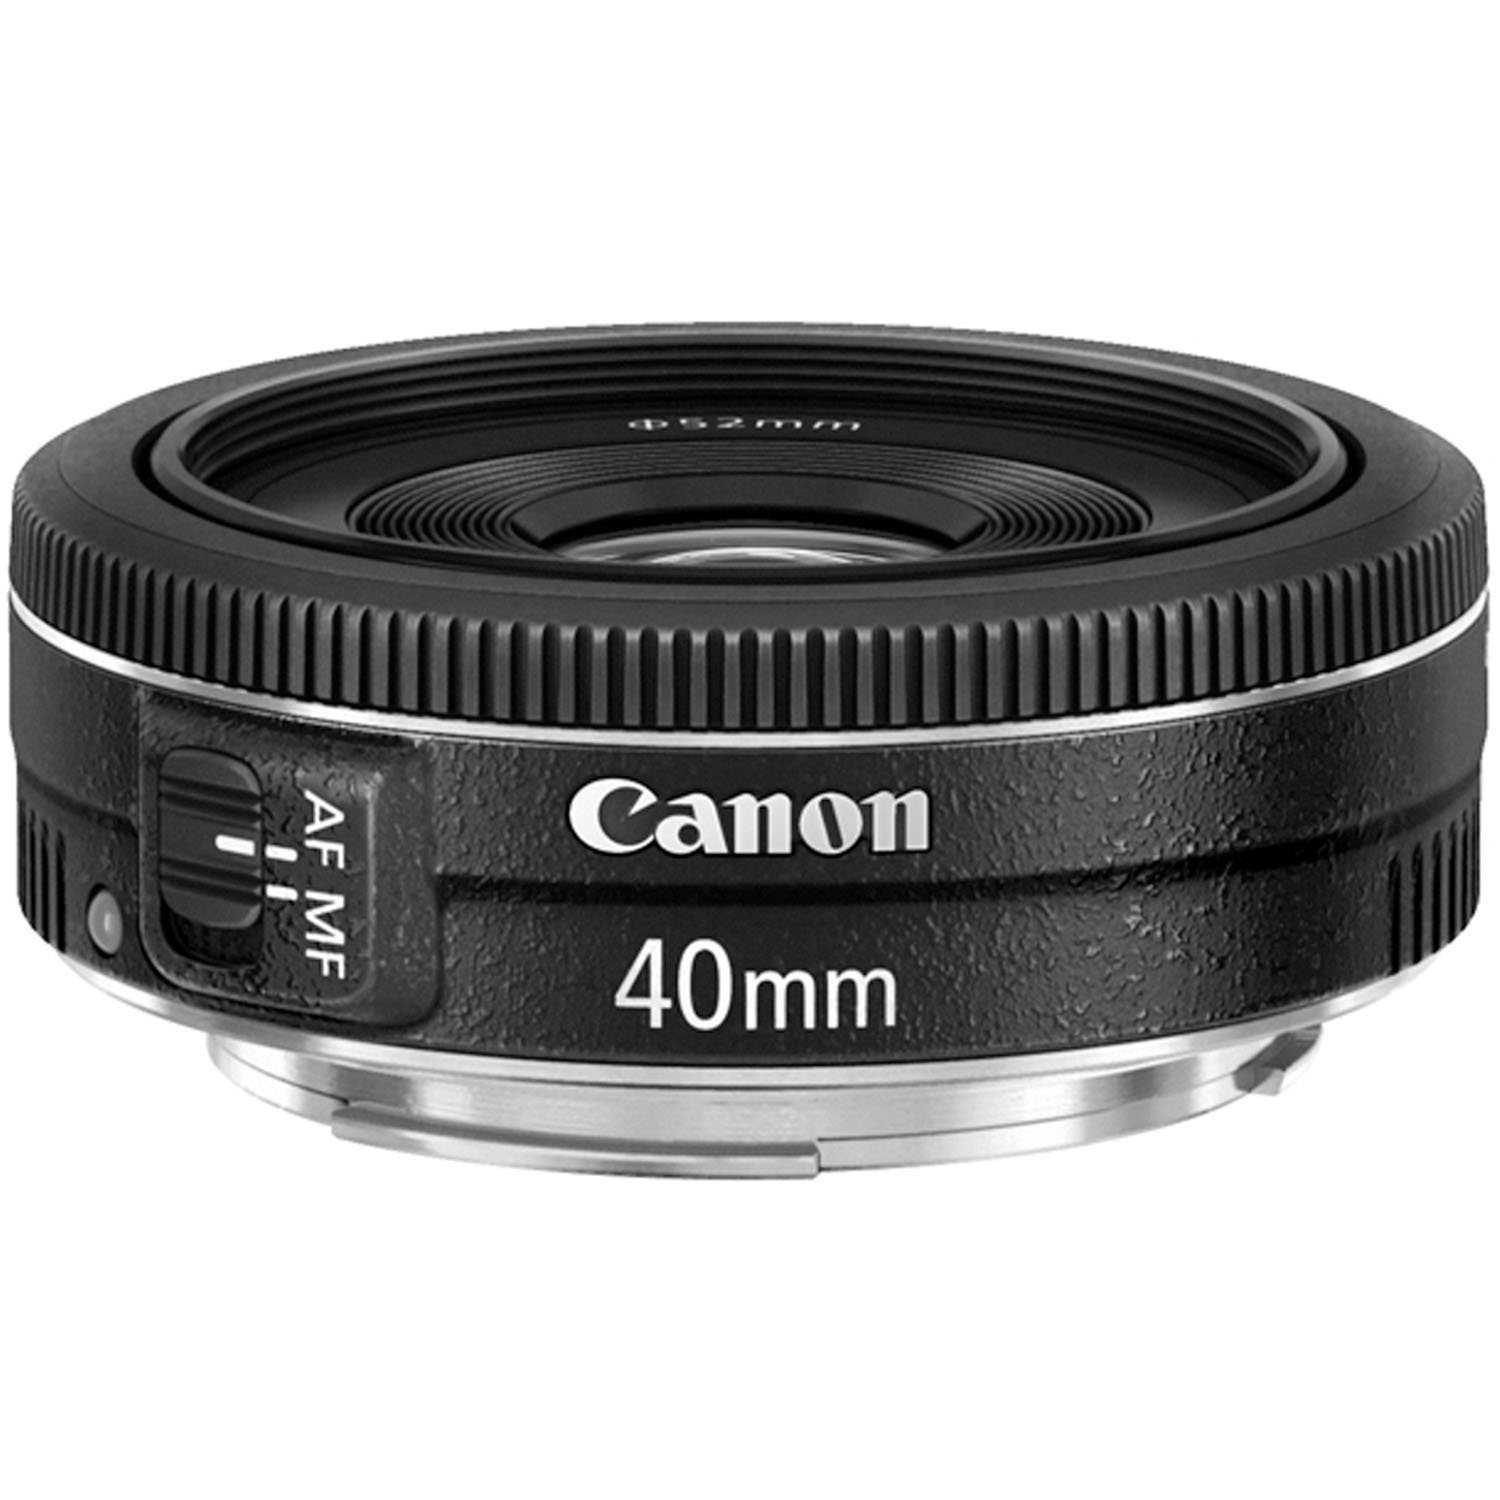 Canon EF 40mm f/2.8 STM Prime Lens for Canon DSLR Camera